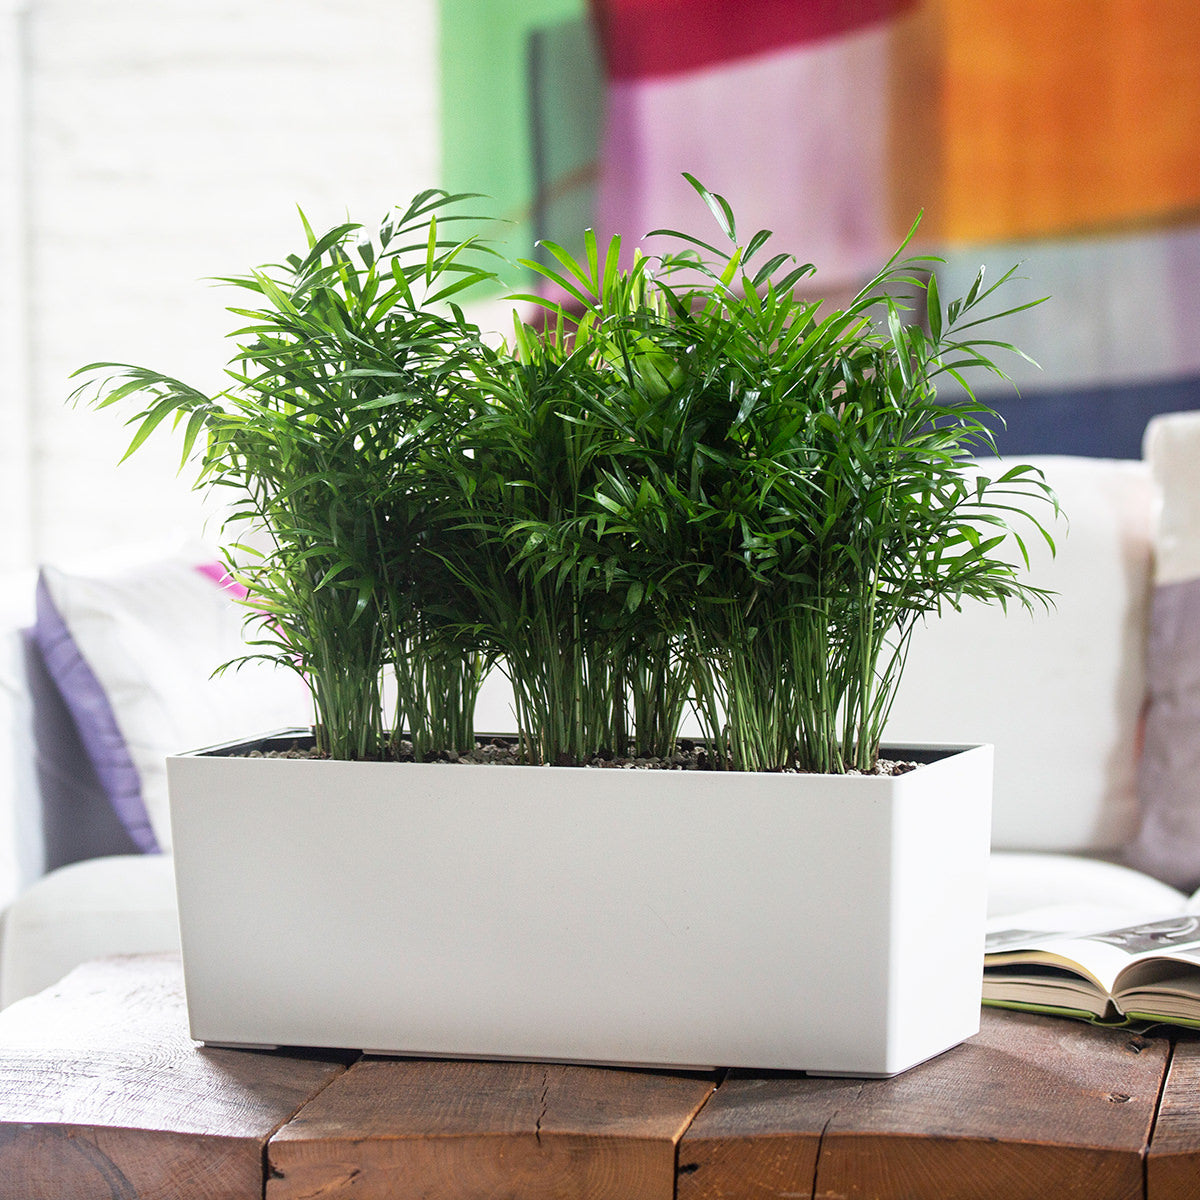 Bella Palm potted in Lechuza Balconera white self-watering planter